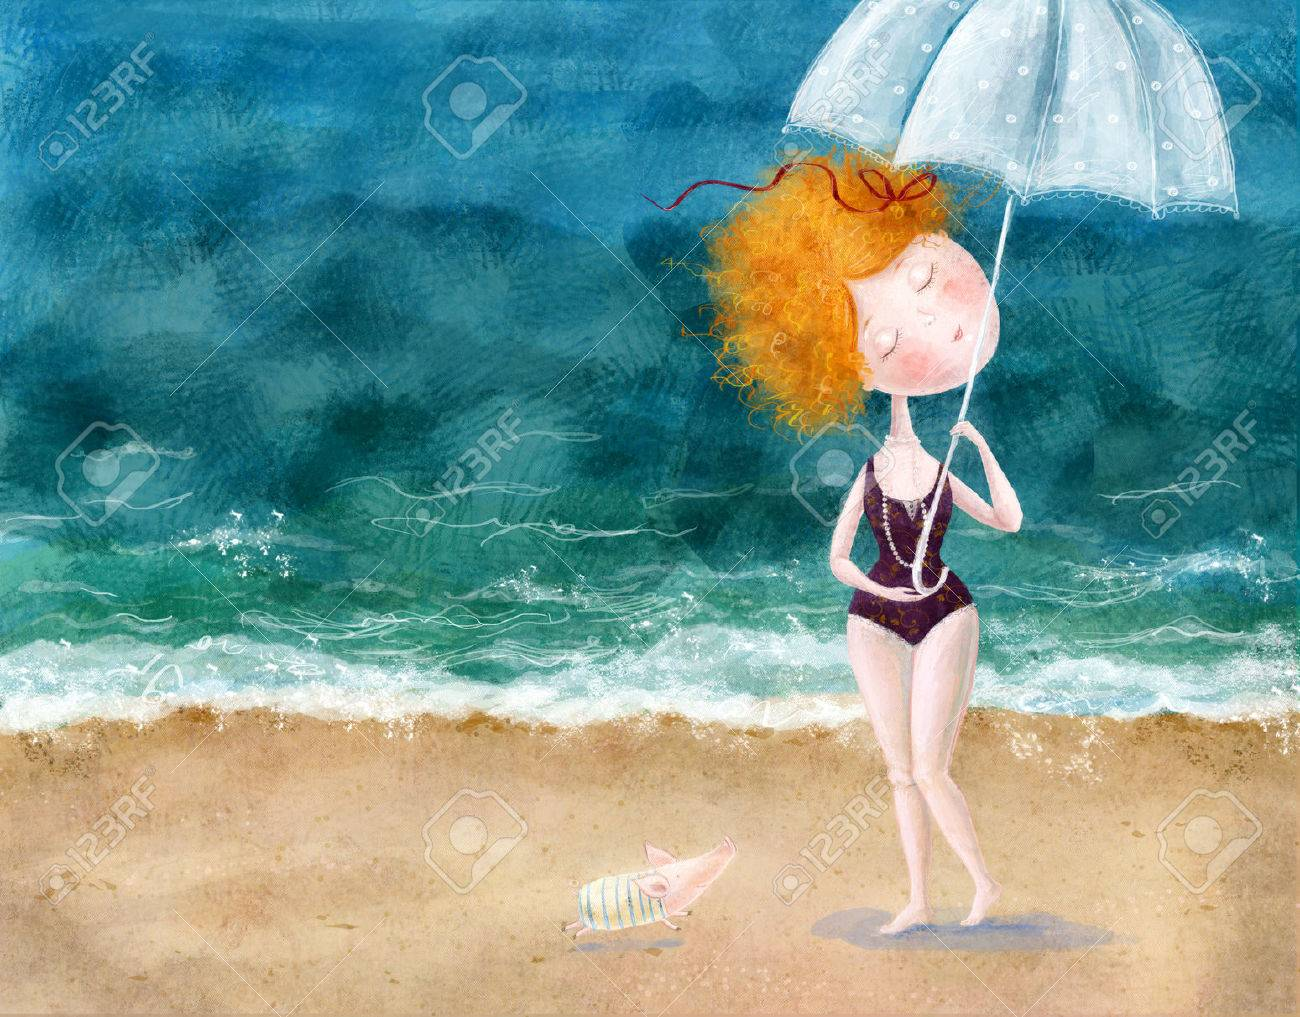 Cute Red Head Girl With Umbrella And Little Pig On The Beach